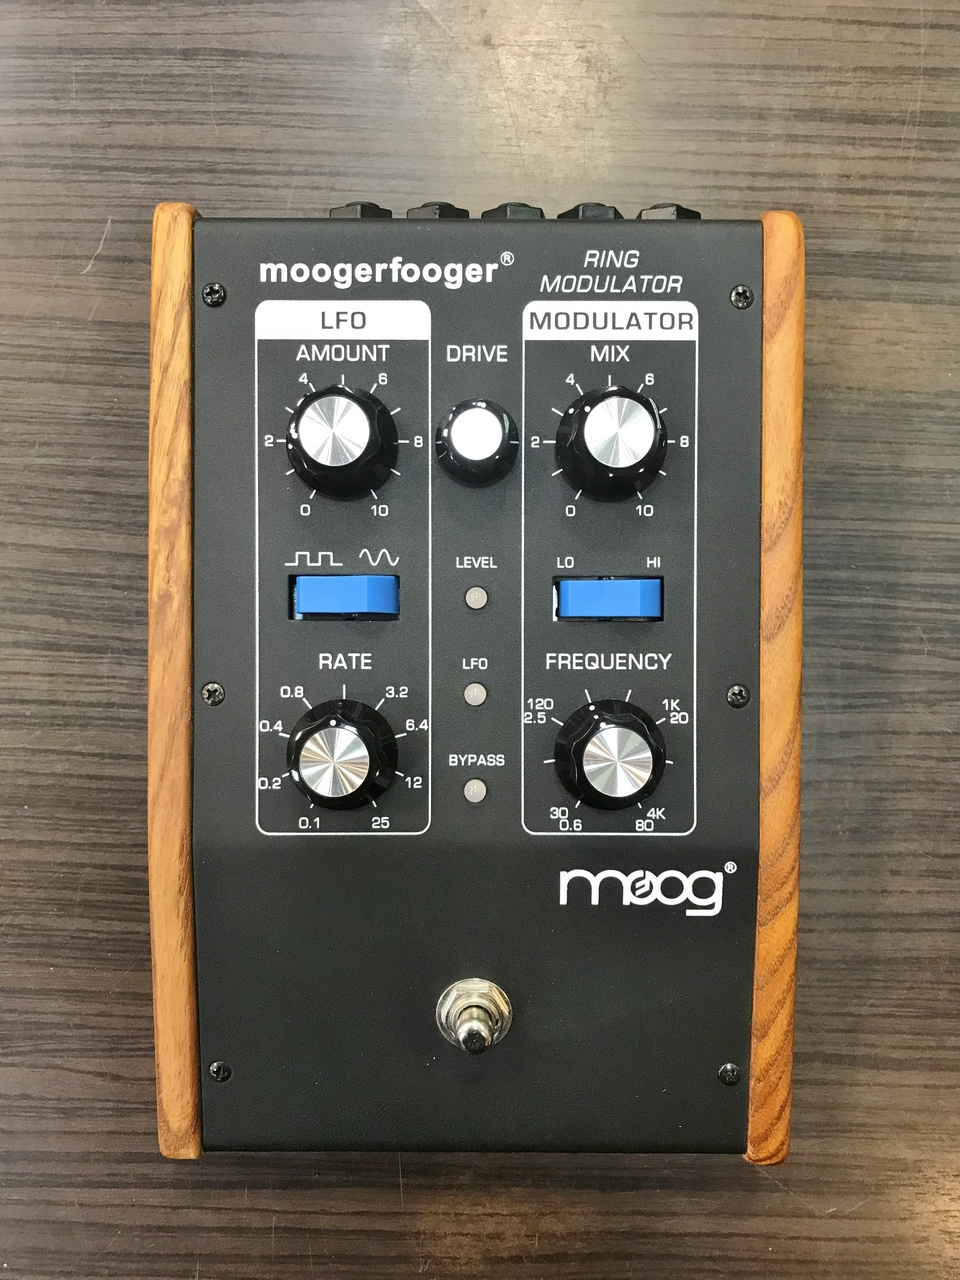 MoogerFooger MF-102 Ring Modulator Outlet Specials] [ring modulator]